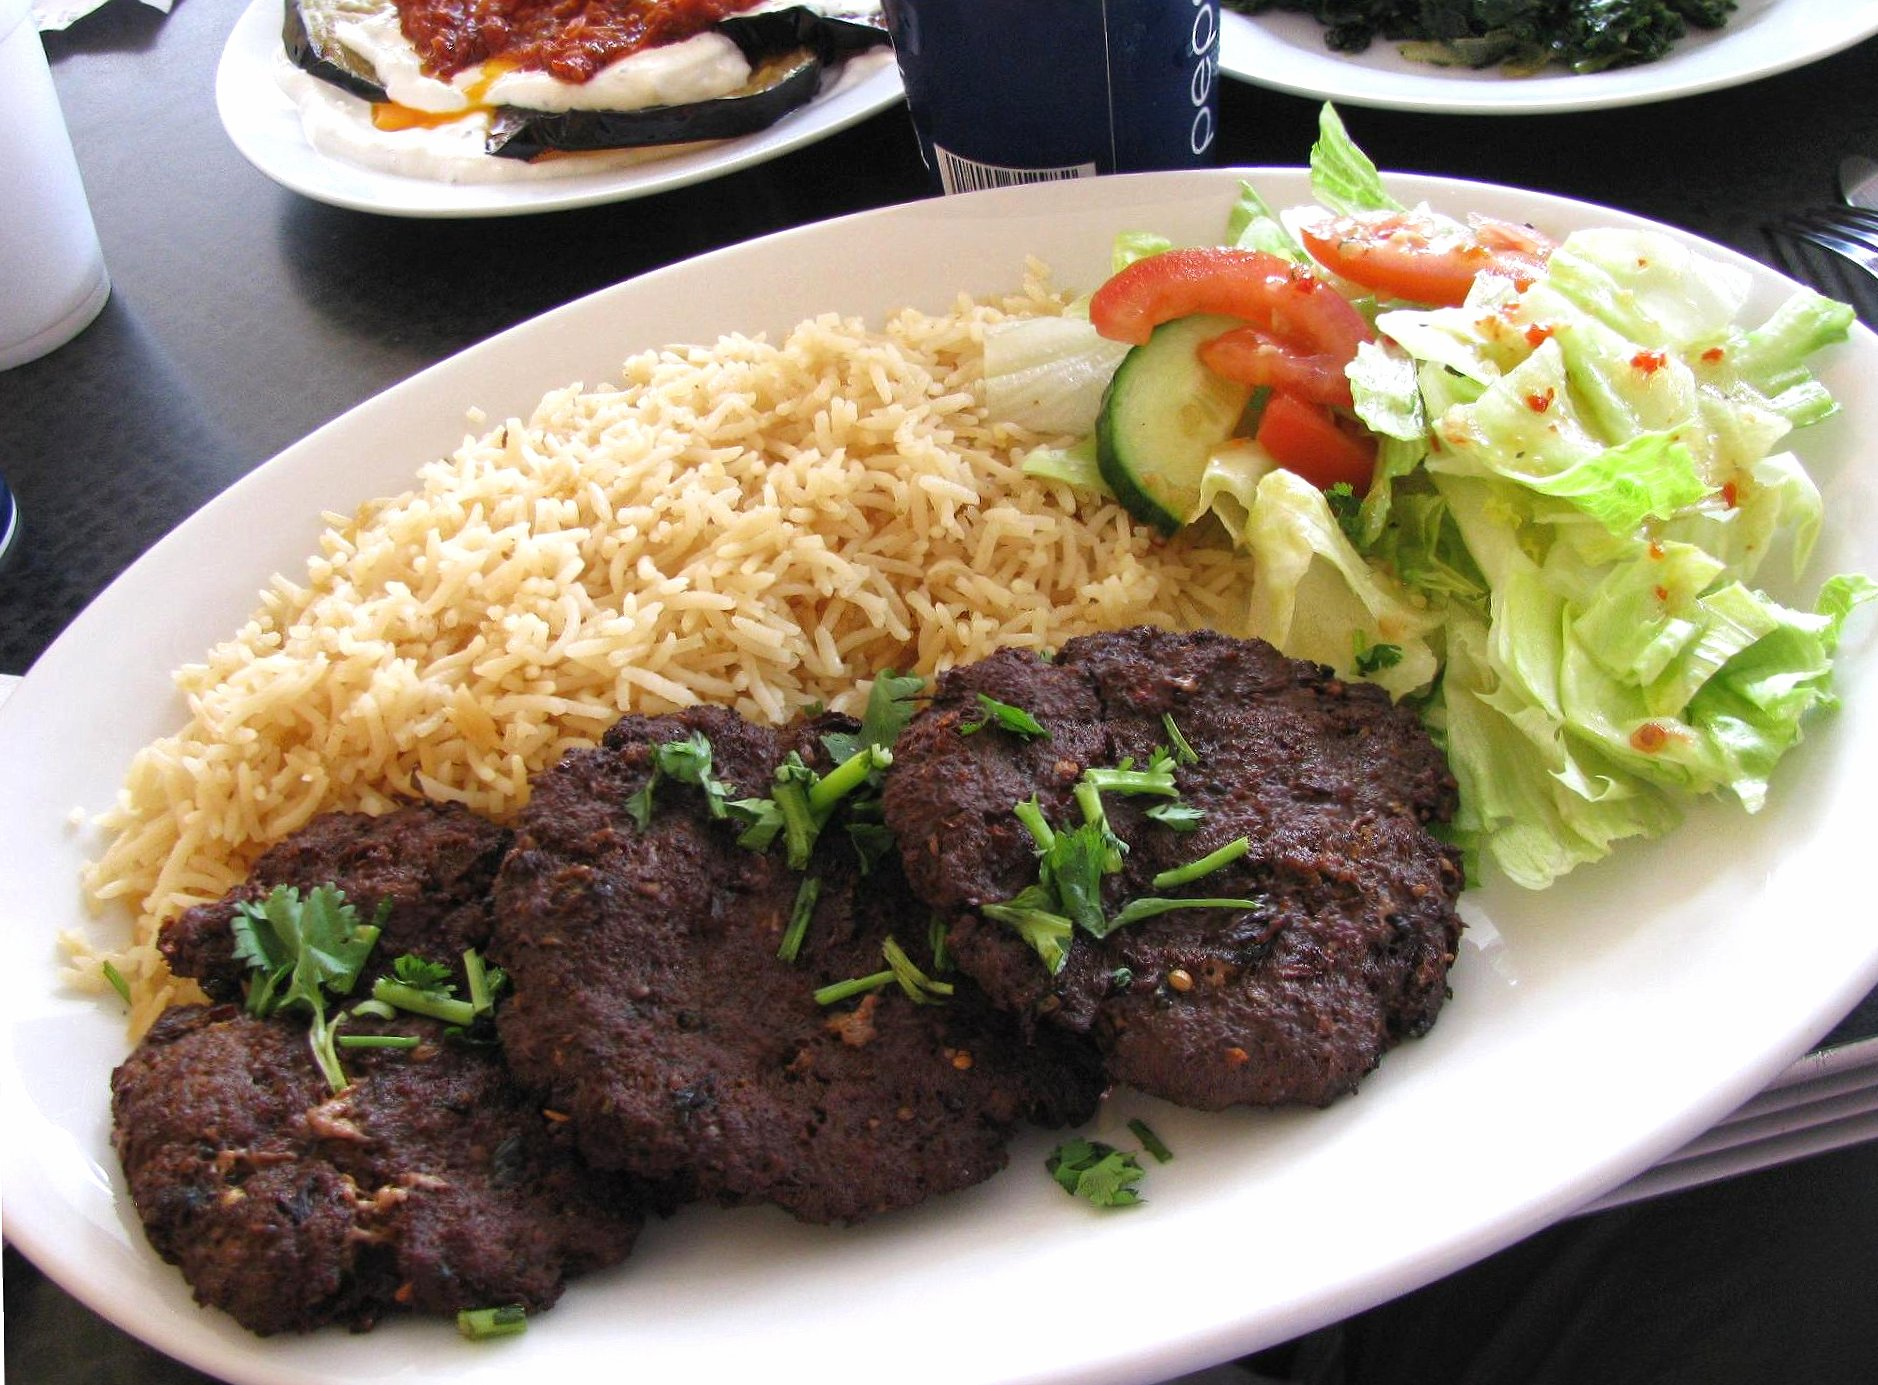 Turkish plate with rice and meat wallpapers HD quality